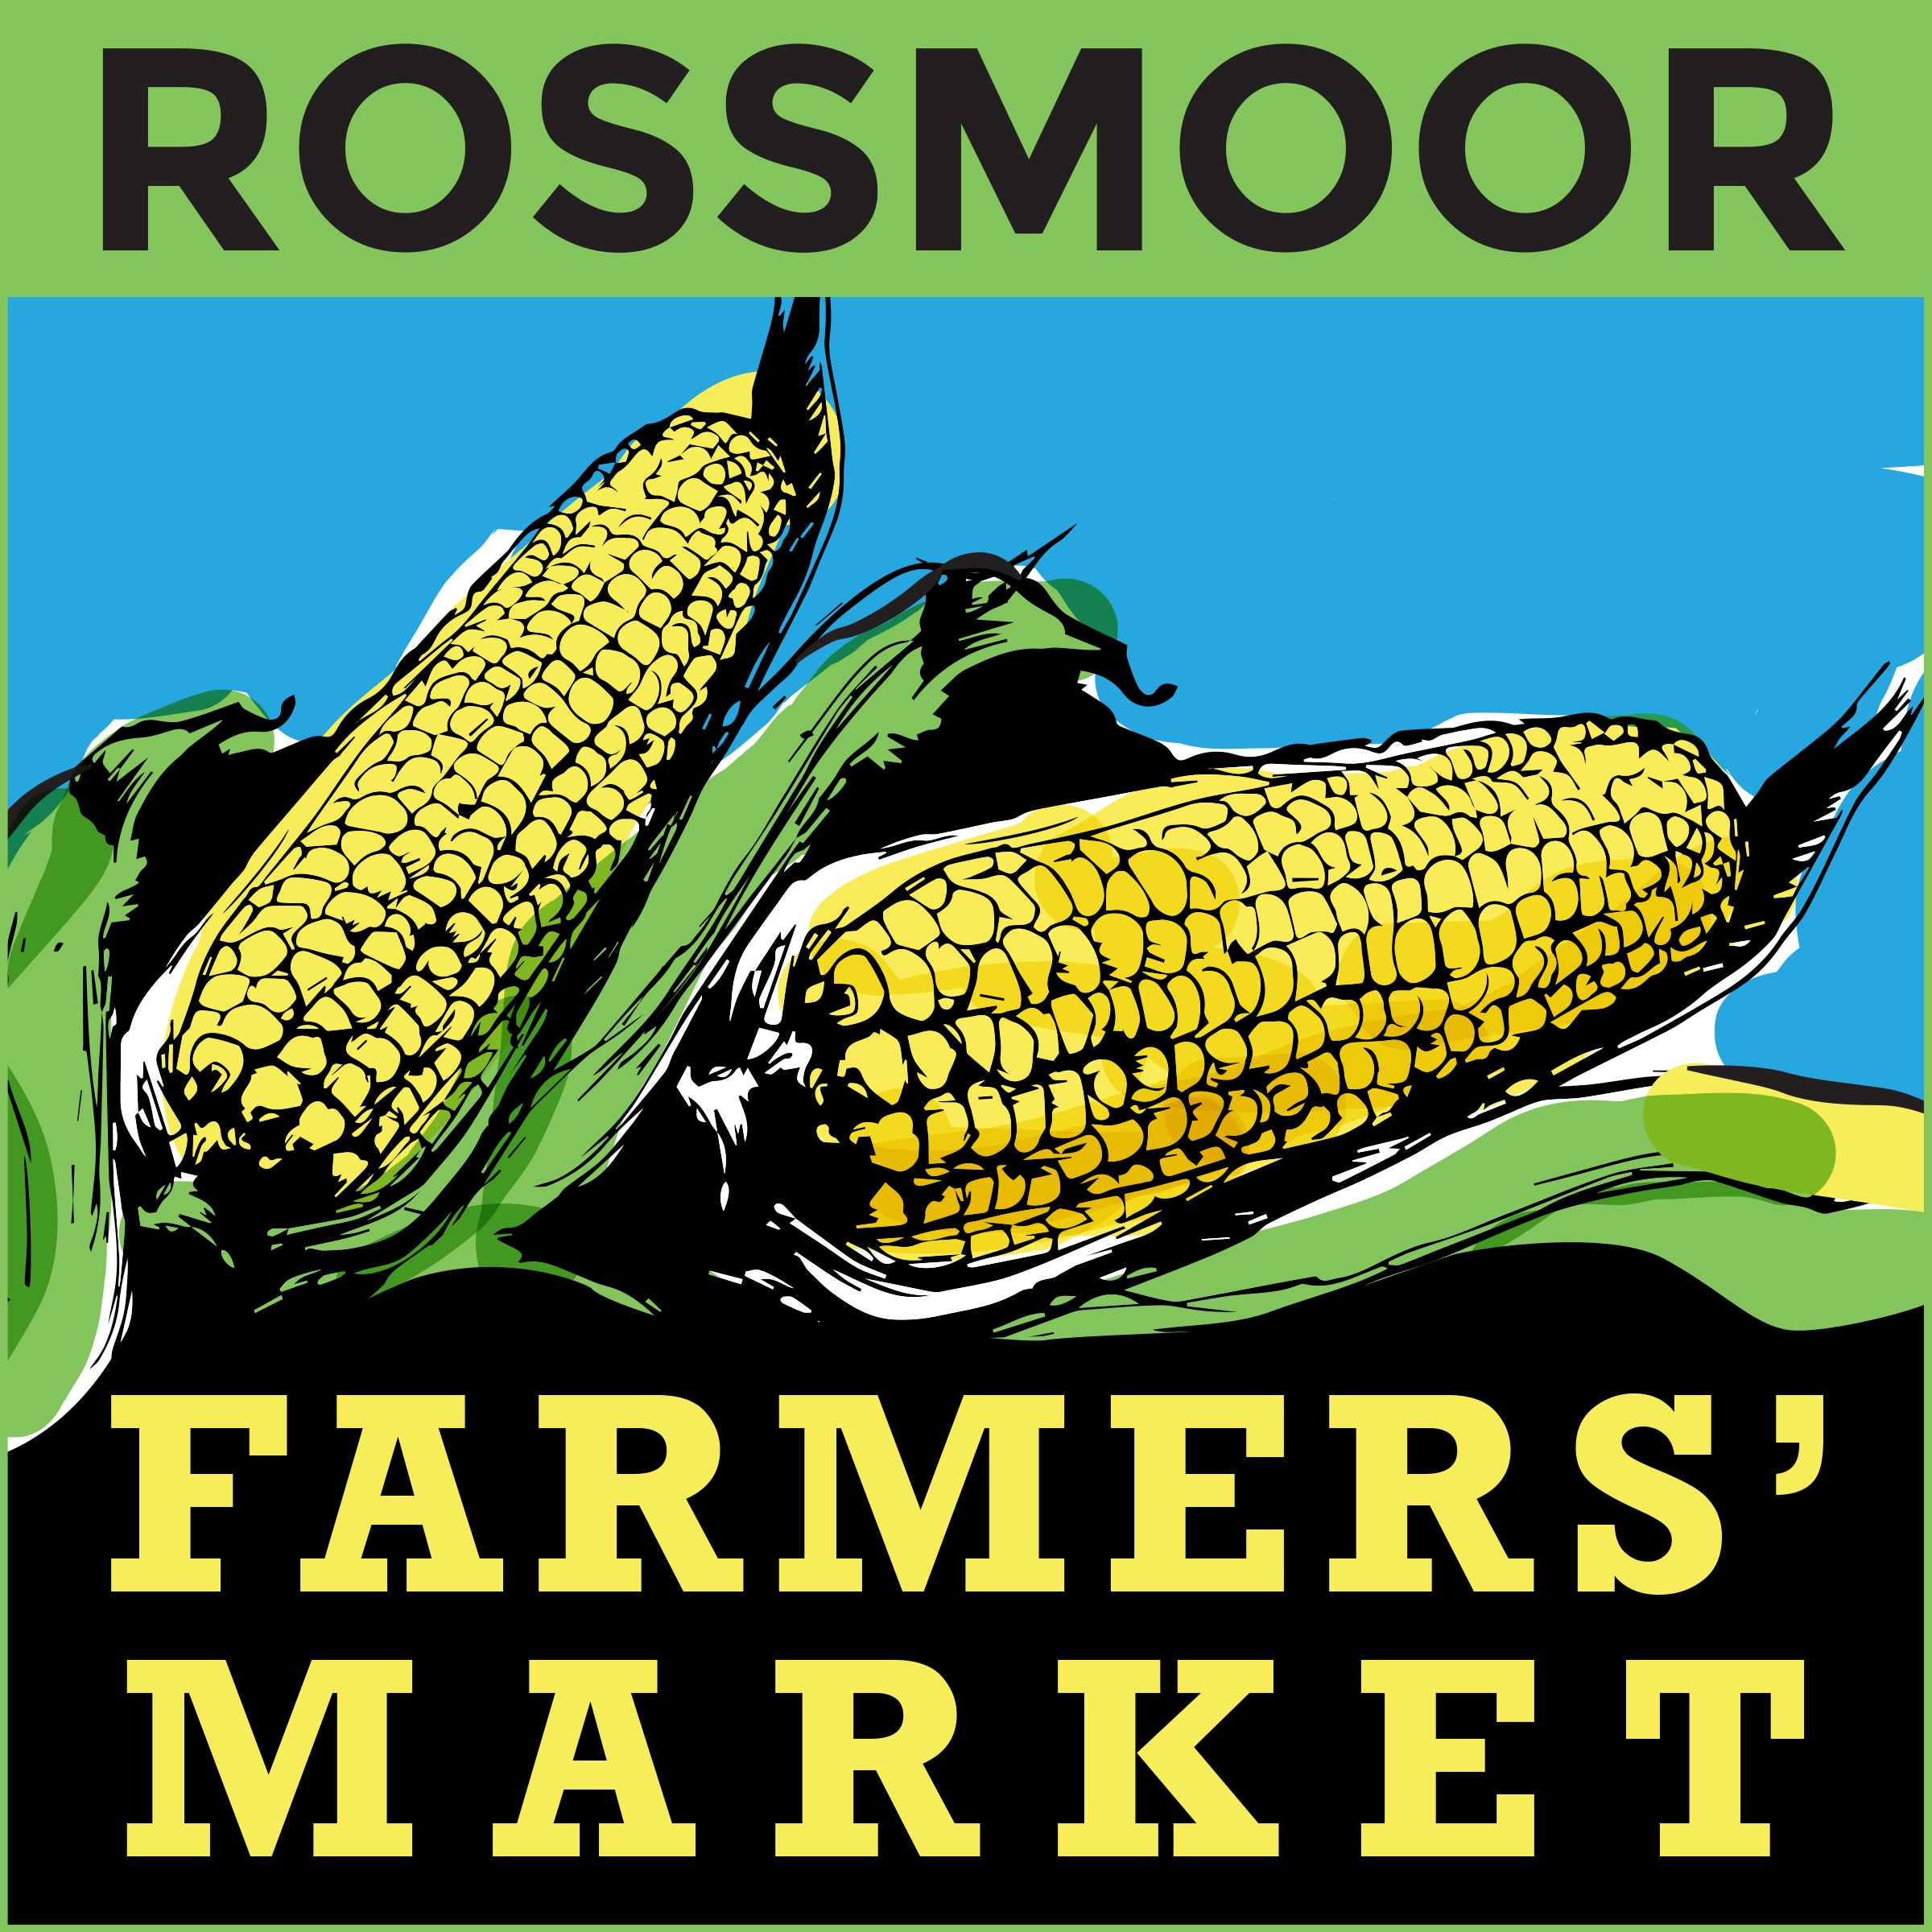 Rossmoor Farmers' Market — California Farmers' Markets Association